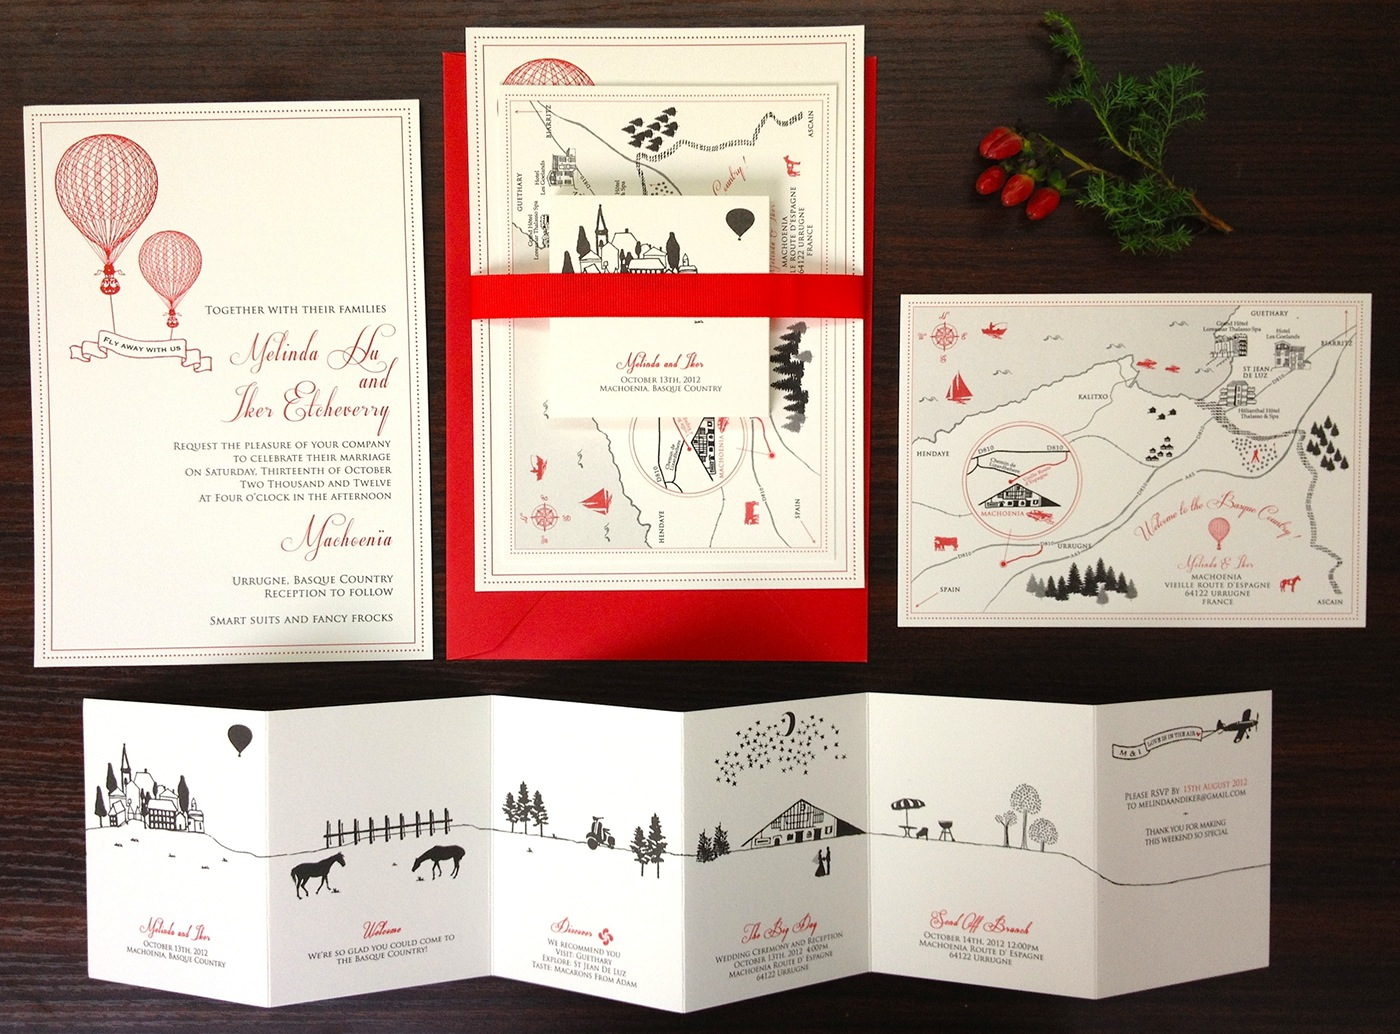 Rustic Basque Country Wedding Invitation on Behance